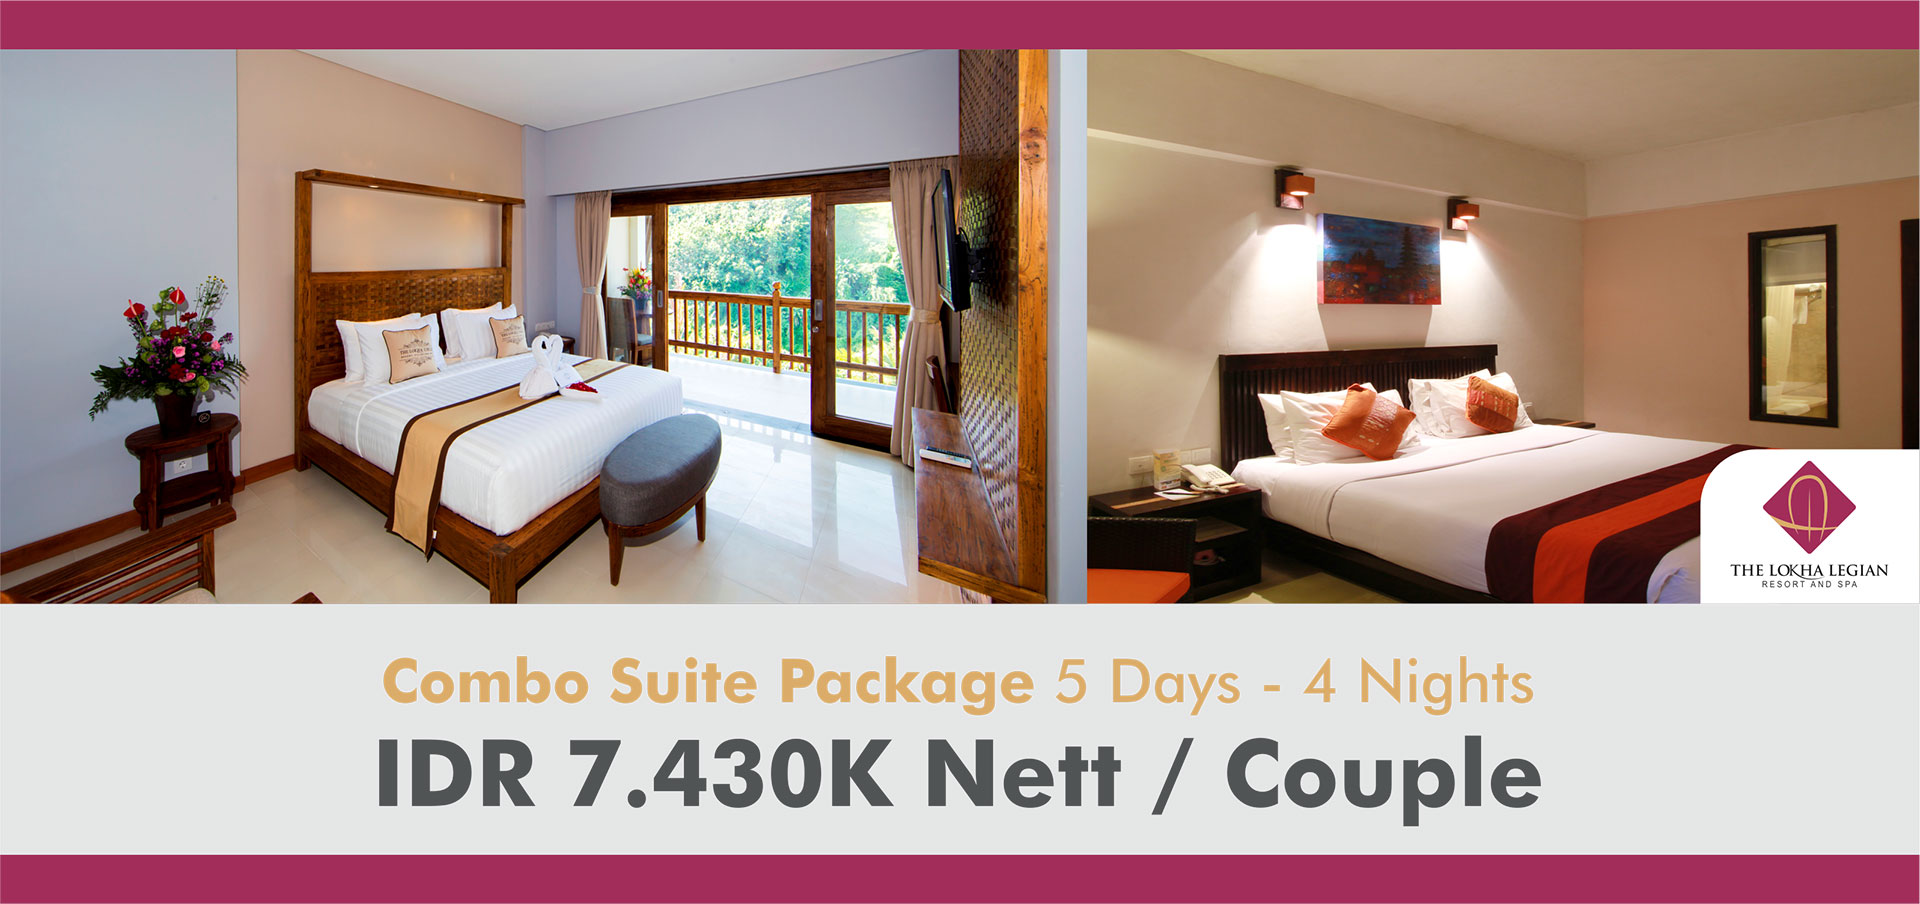 combo-suite-package-5-days-4-nights-revisi